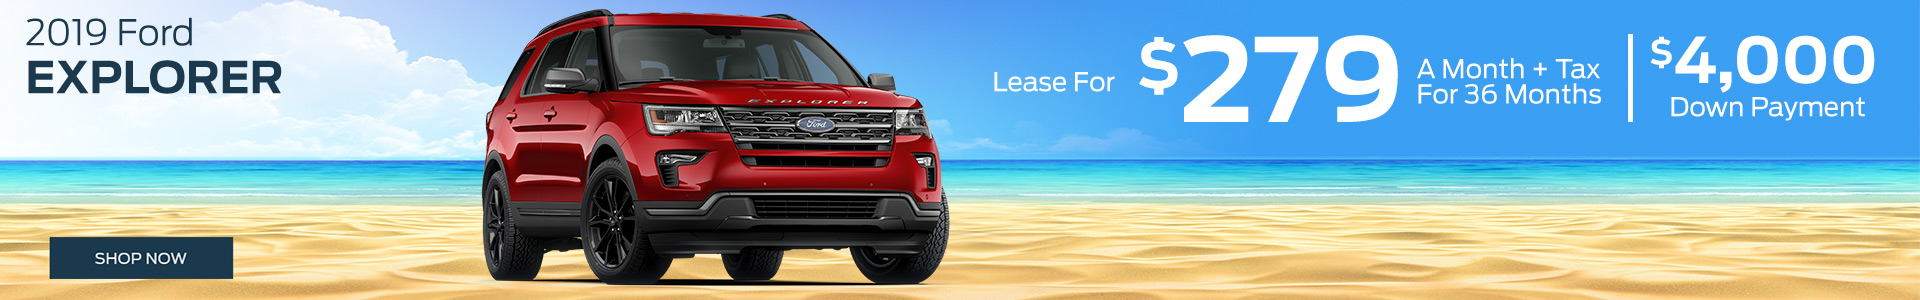 2019 Explorer - Lease for $279